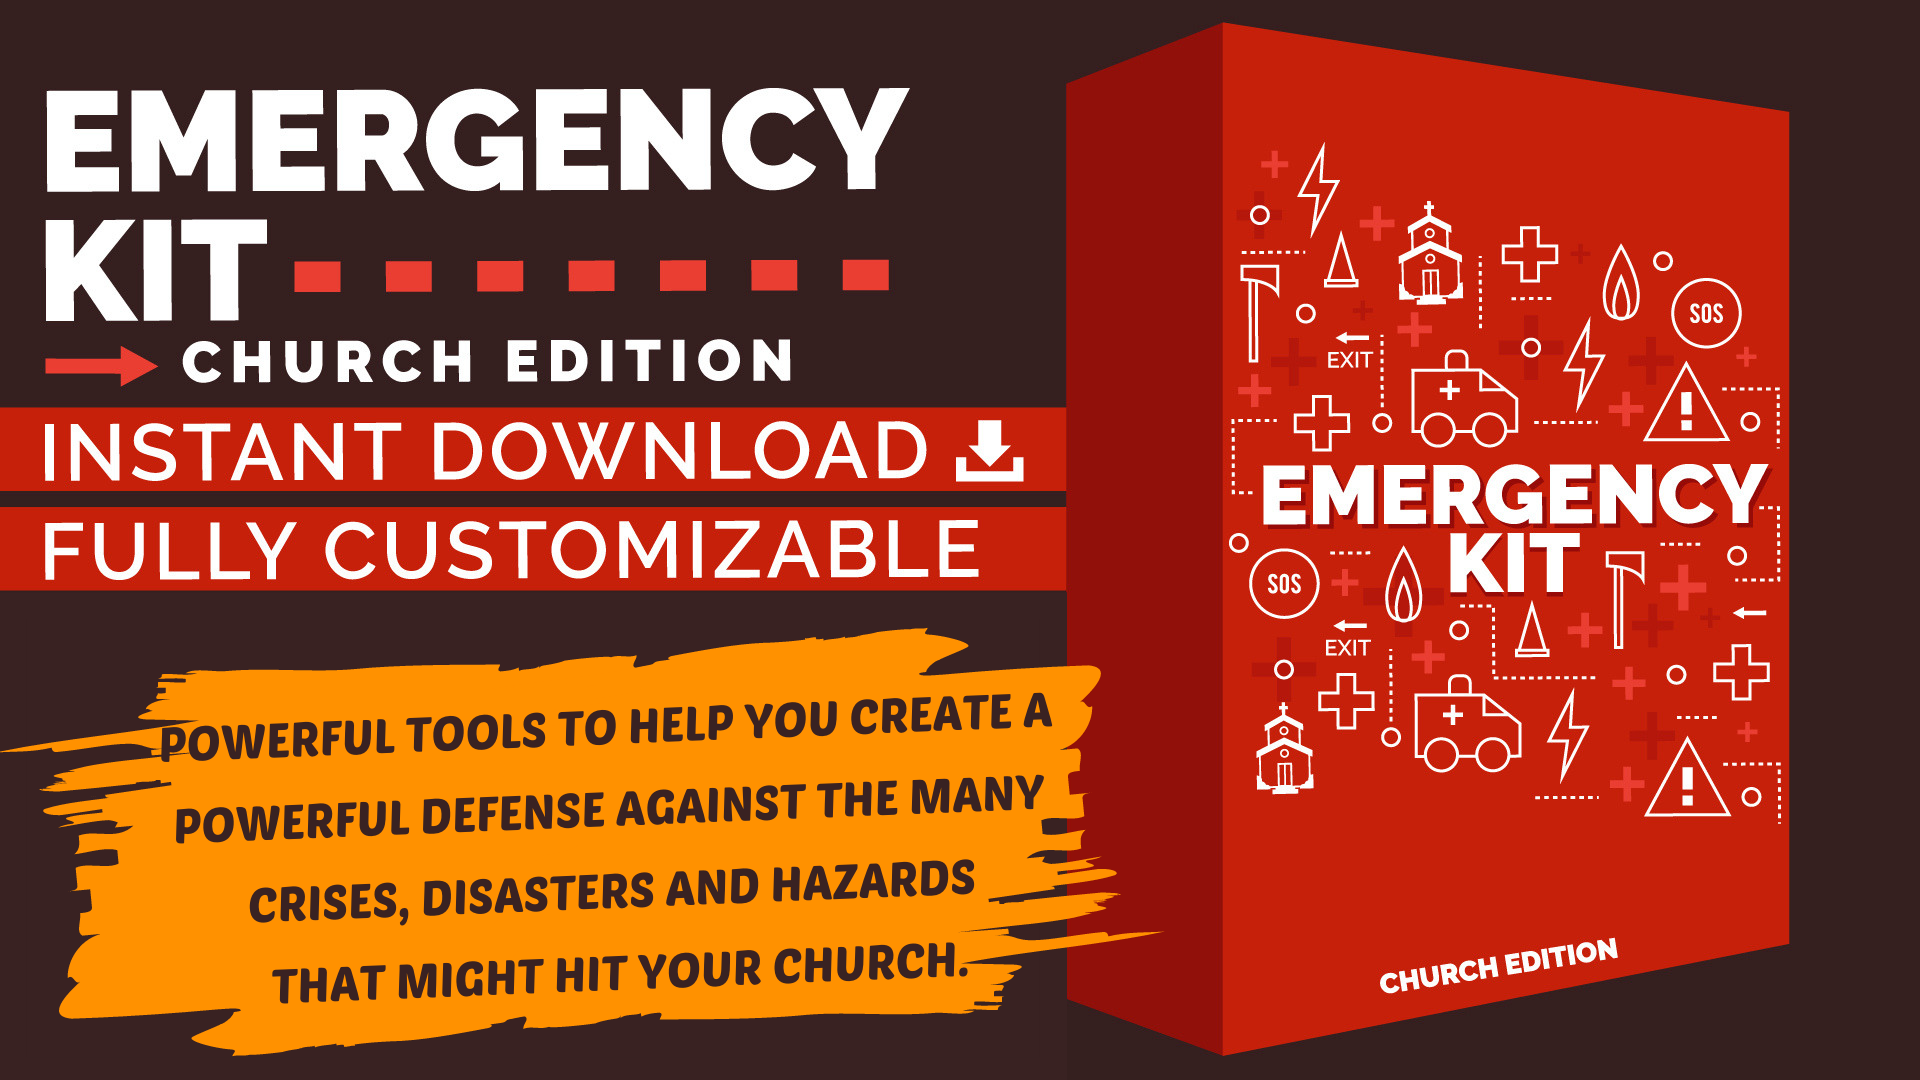 powerful tools to help you create clear step-by-step procedures for responding to various kinds of emergencies.png